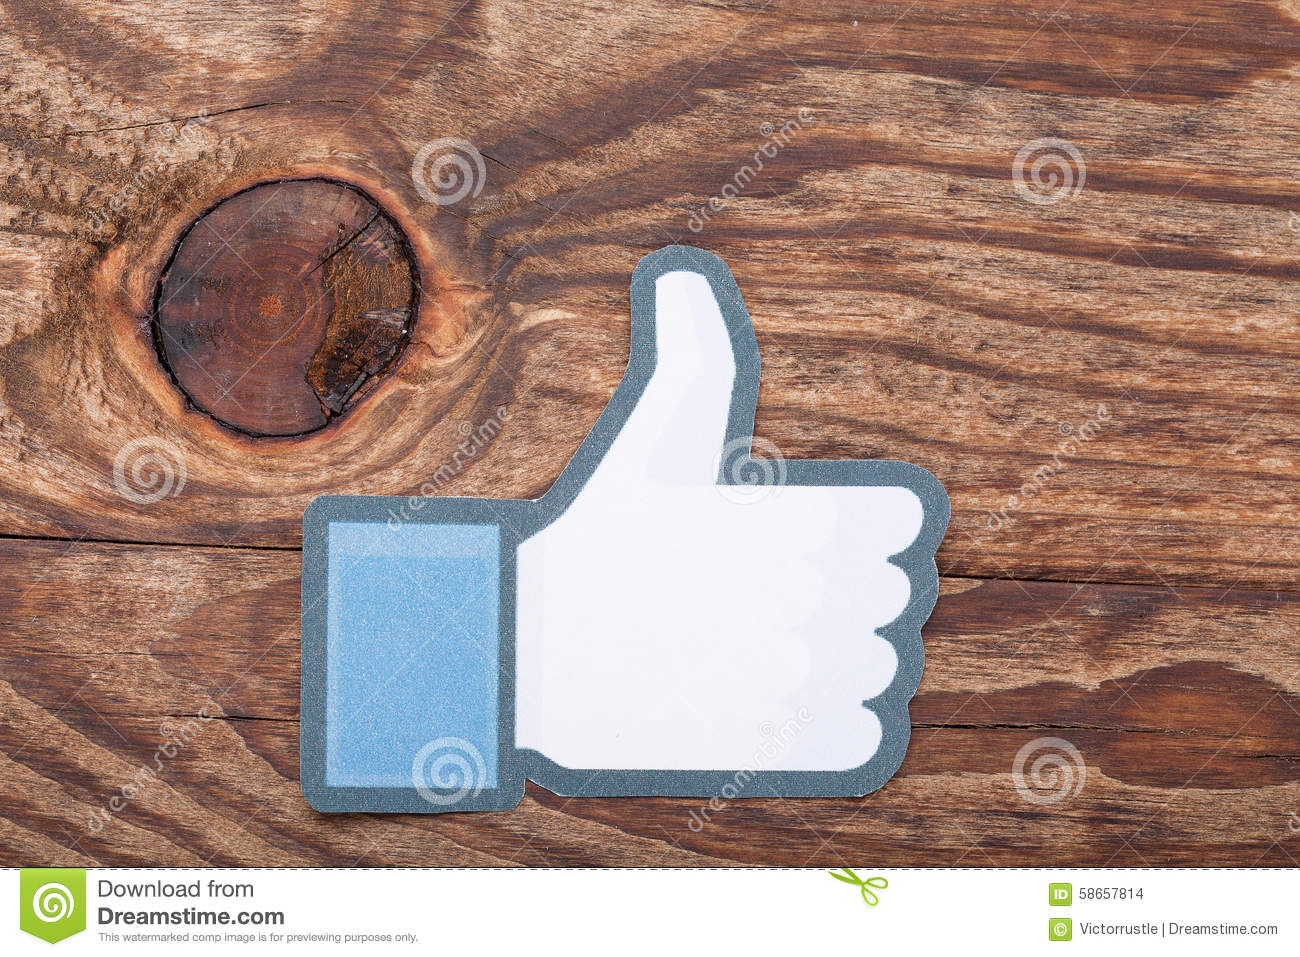 KIEV, UKRAINE - AUGUST 22, 2015: Facebook thumbs up sign printed paper. Is well-known social networking service.